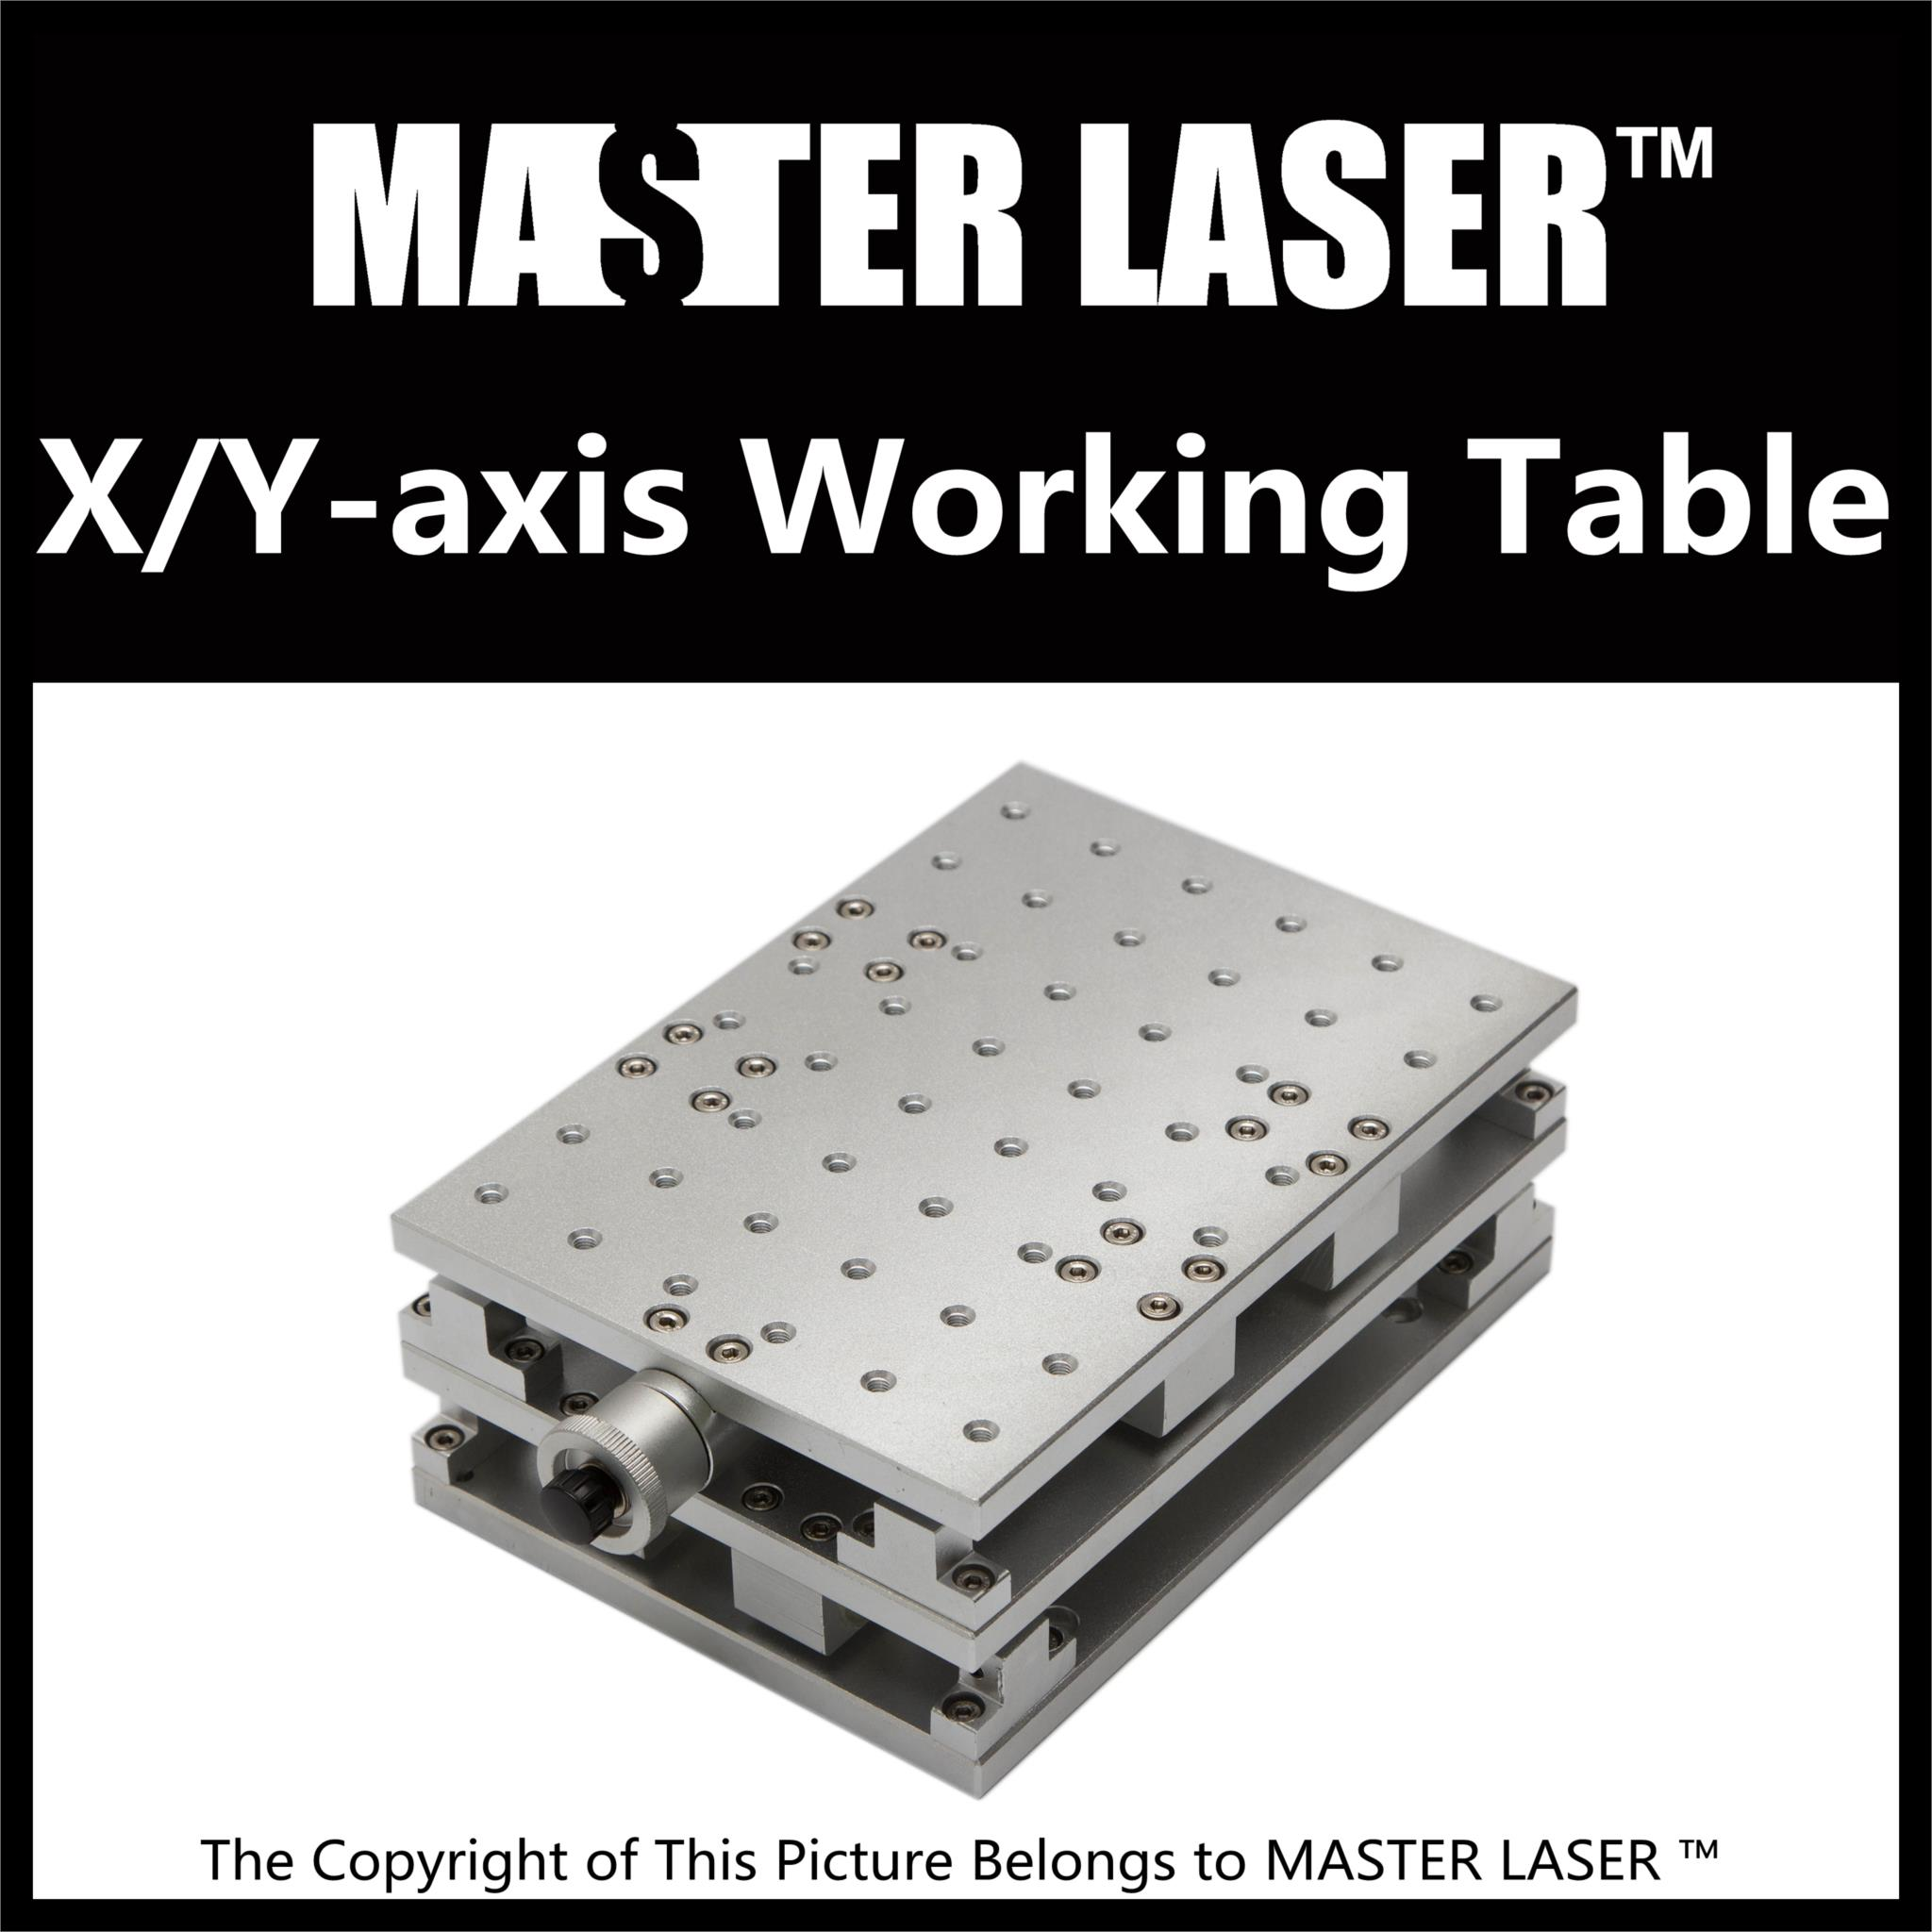 1064nm Fiber Laser Marking Engraving Machine  2 Axis Moving Table Portable Cabinet Case XY Table economic al case of 1064nm fiber laser machine parts for laser machine beam combiner mirror mount light path system